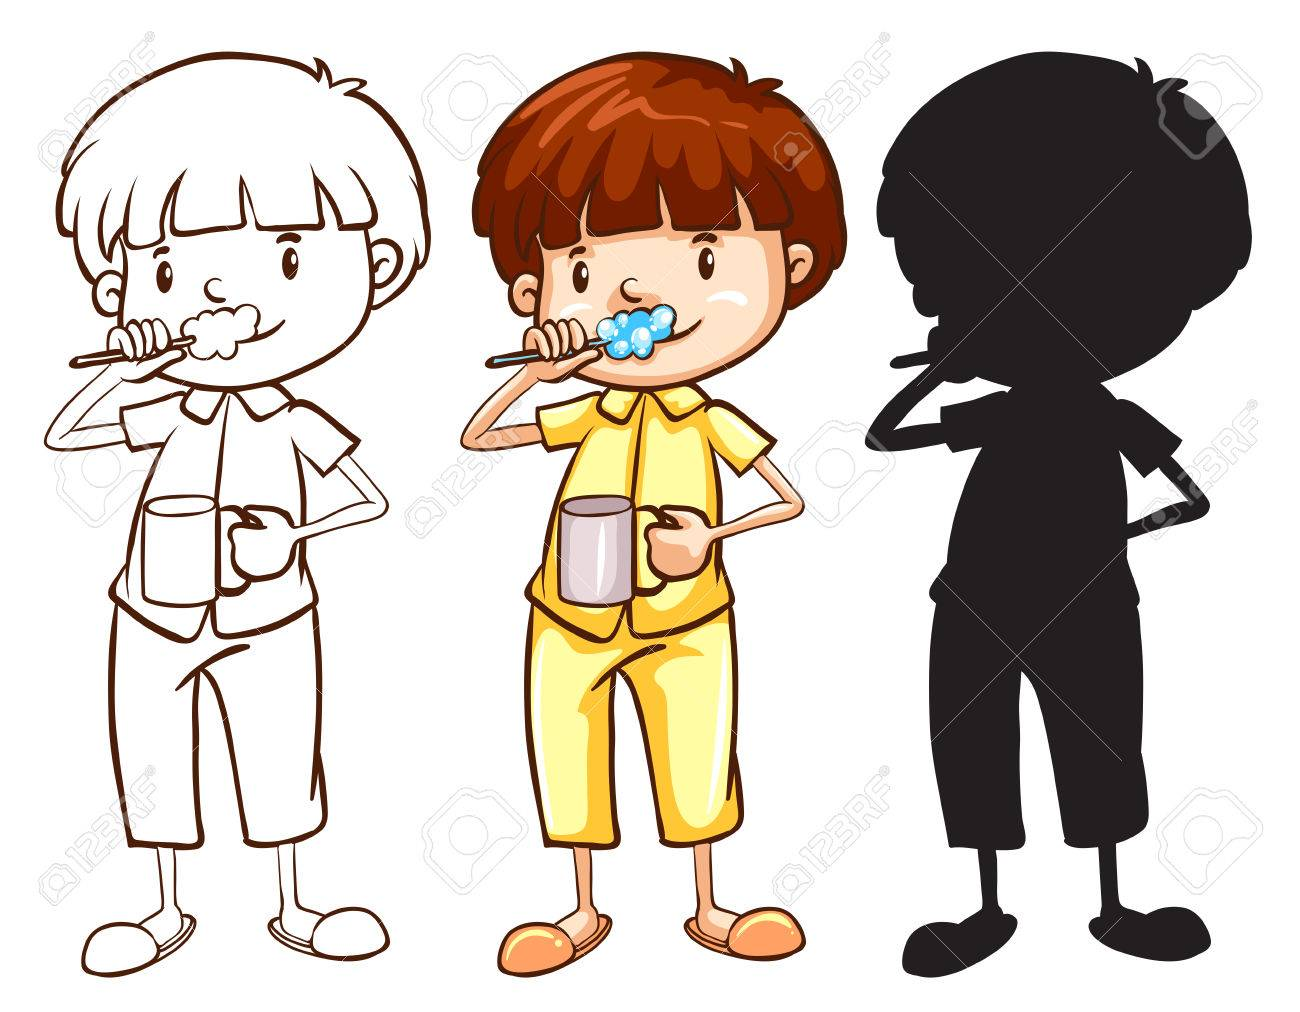 Illustration Of A Sketch Of A Boy Toothbrushing In Different